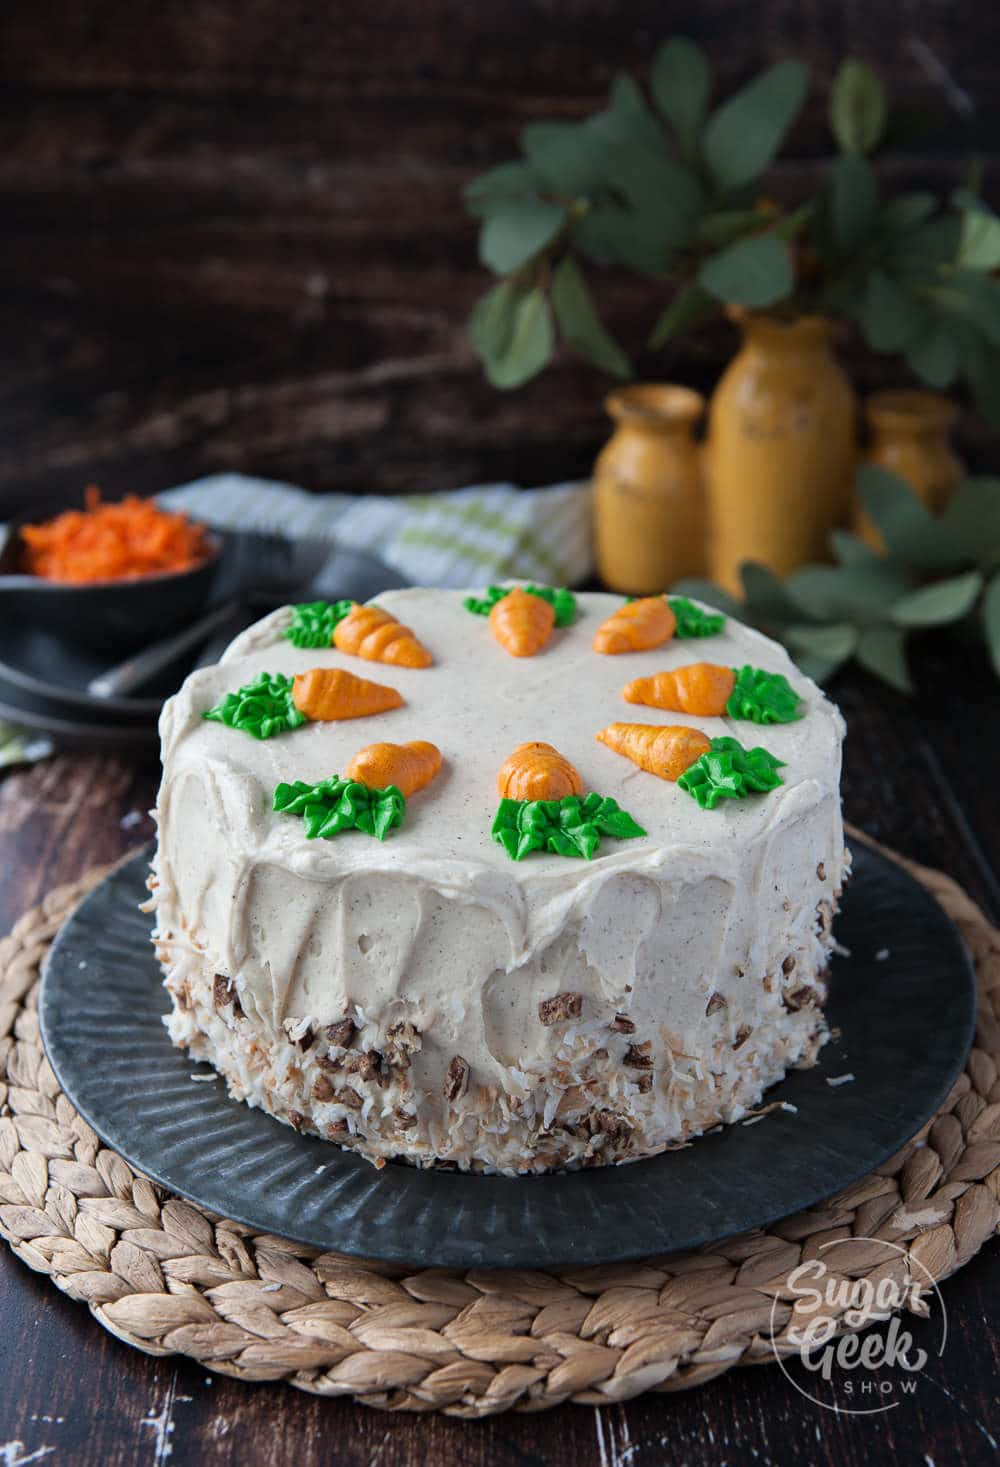 Homestyle carrot cake with pineapple, toasted coconut, candied pecans and big chunks of carrots. Frosted with brown butter cream cheese frosting and buttercream carrots